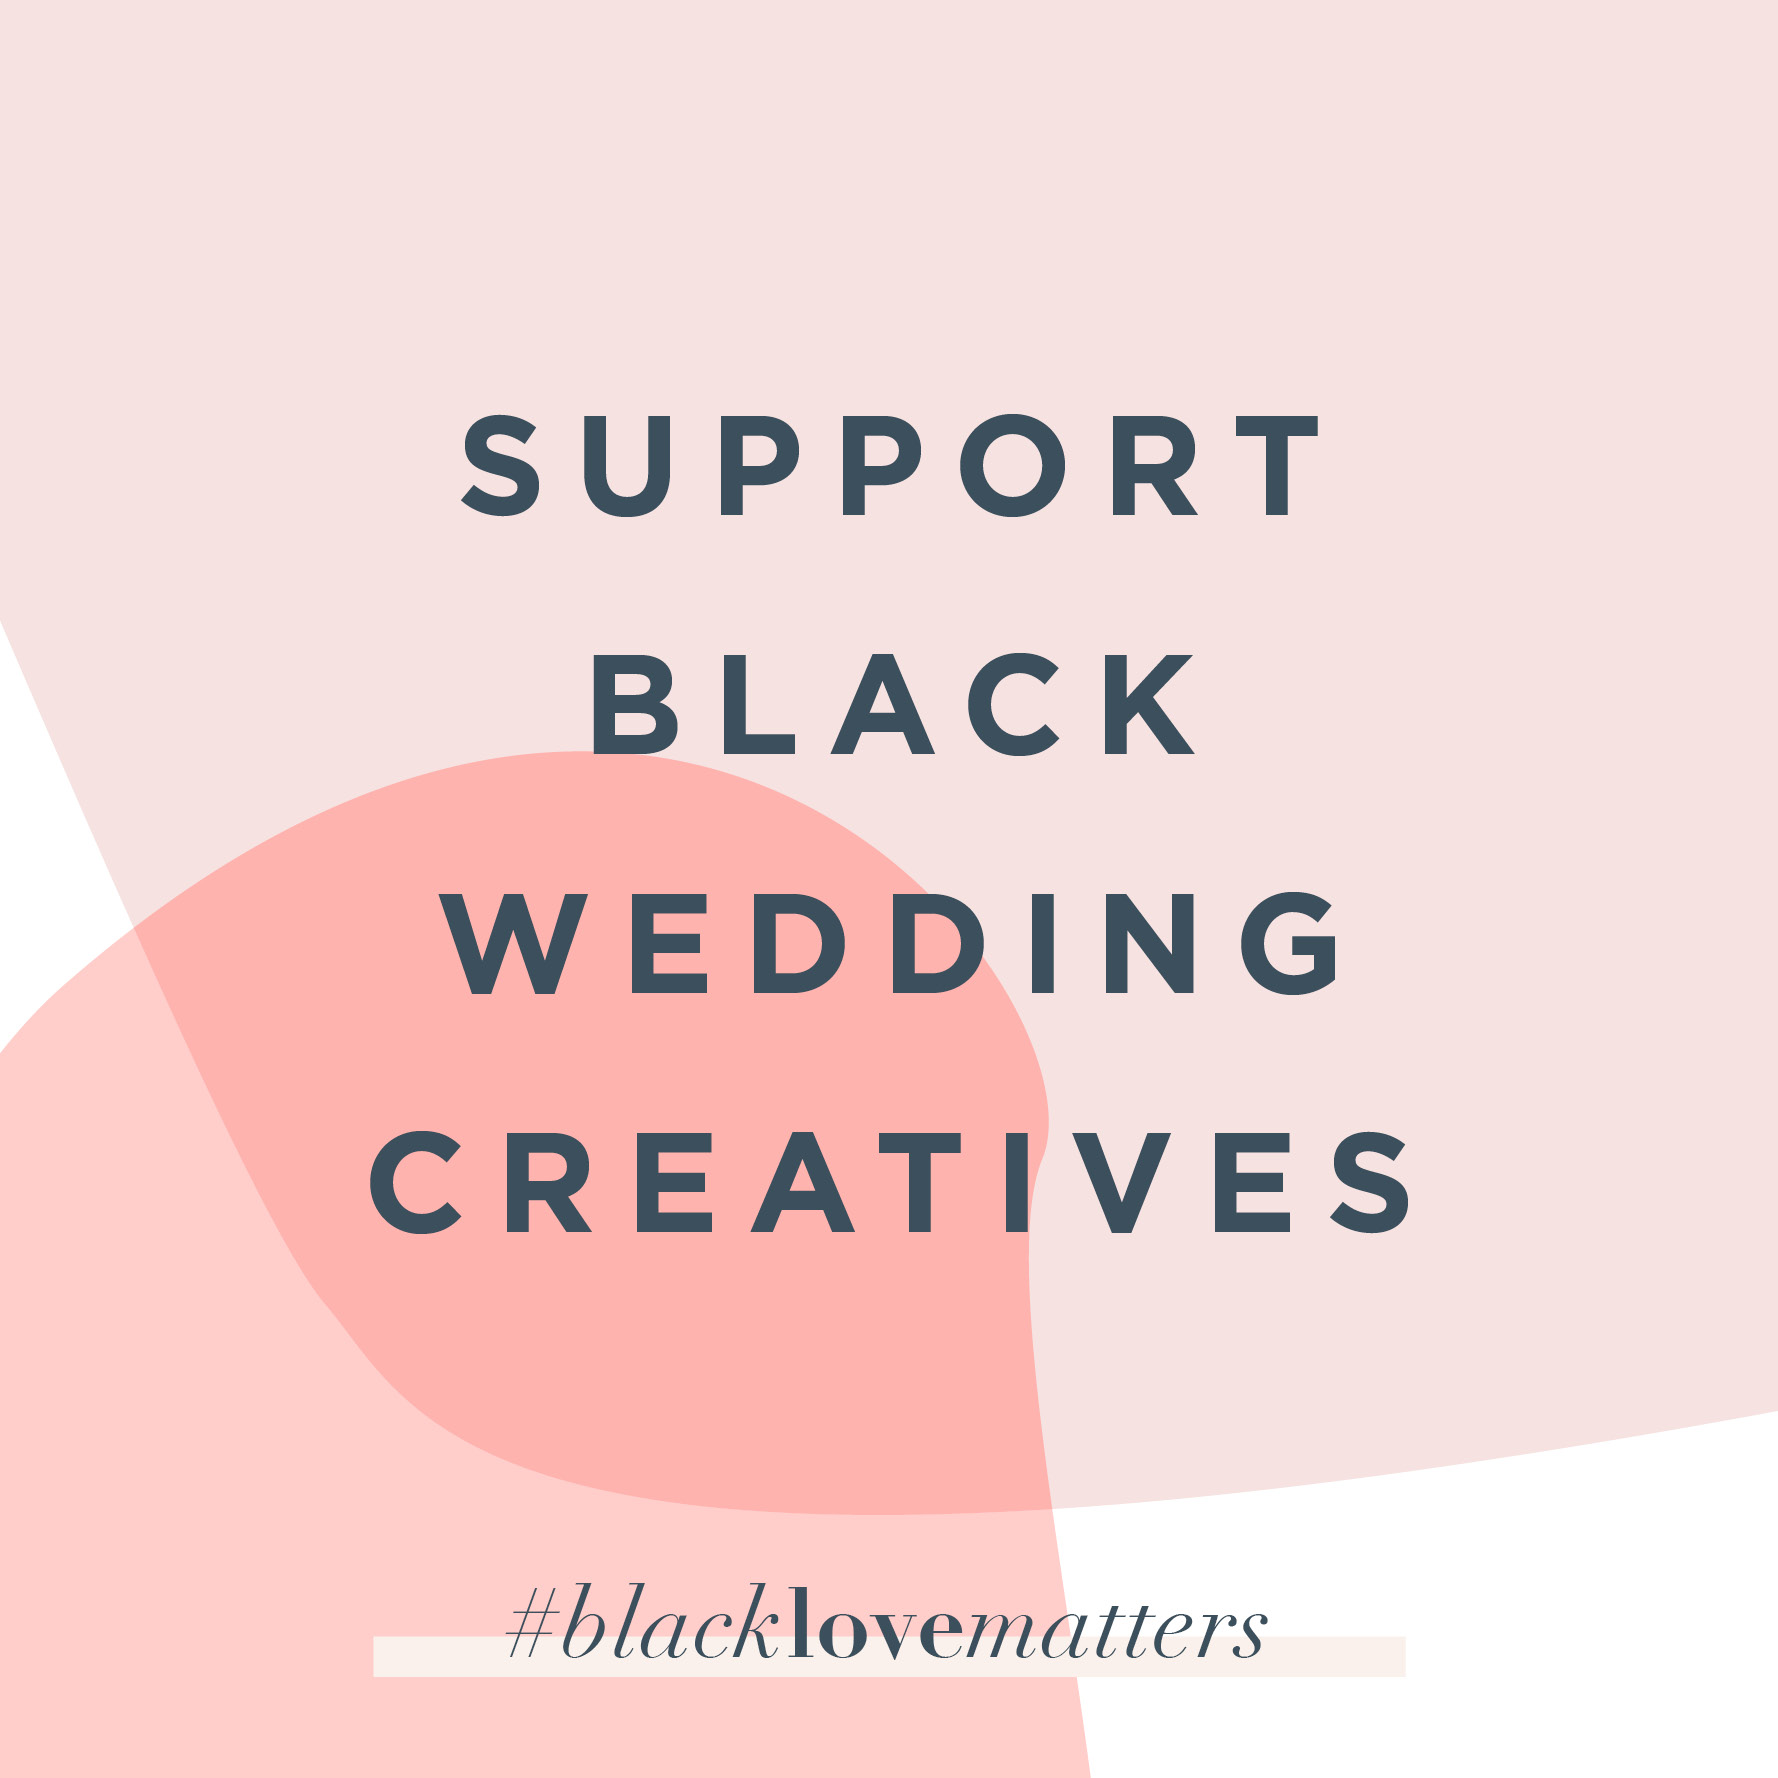 support black wedding creatives